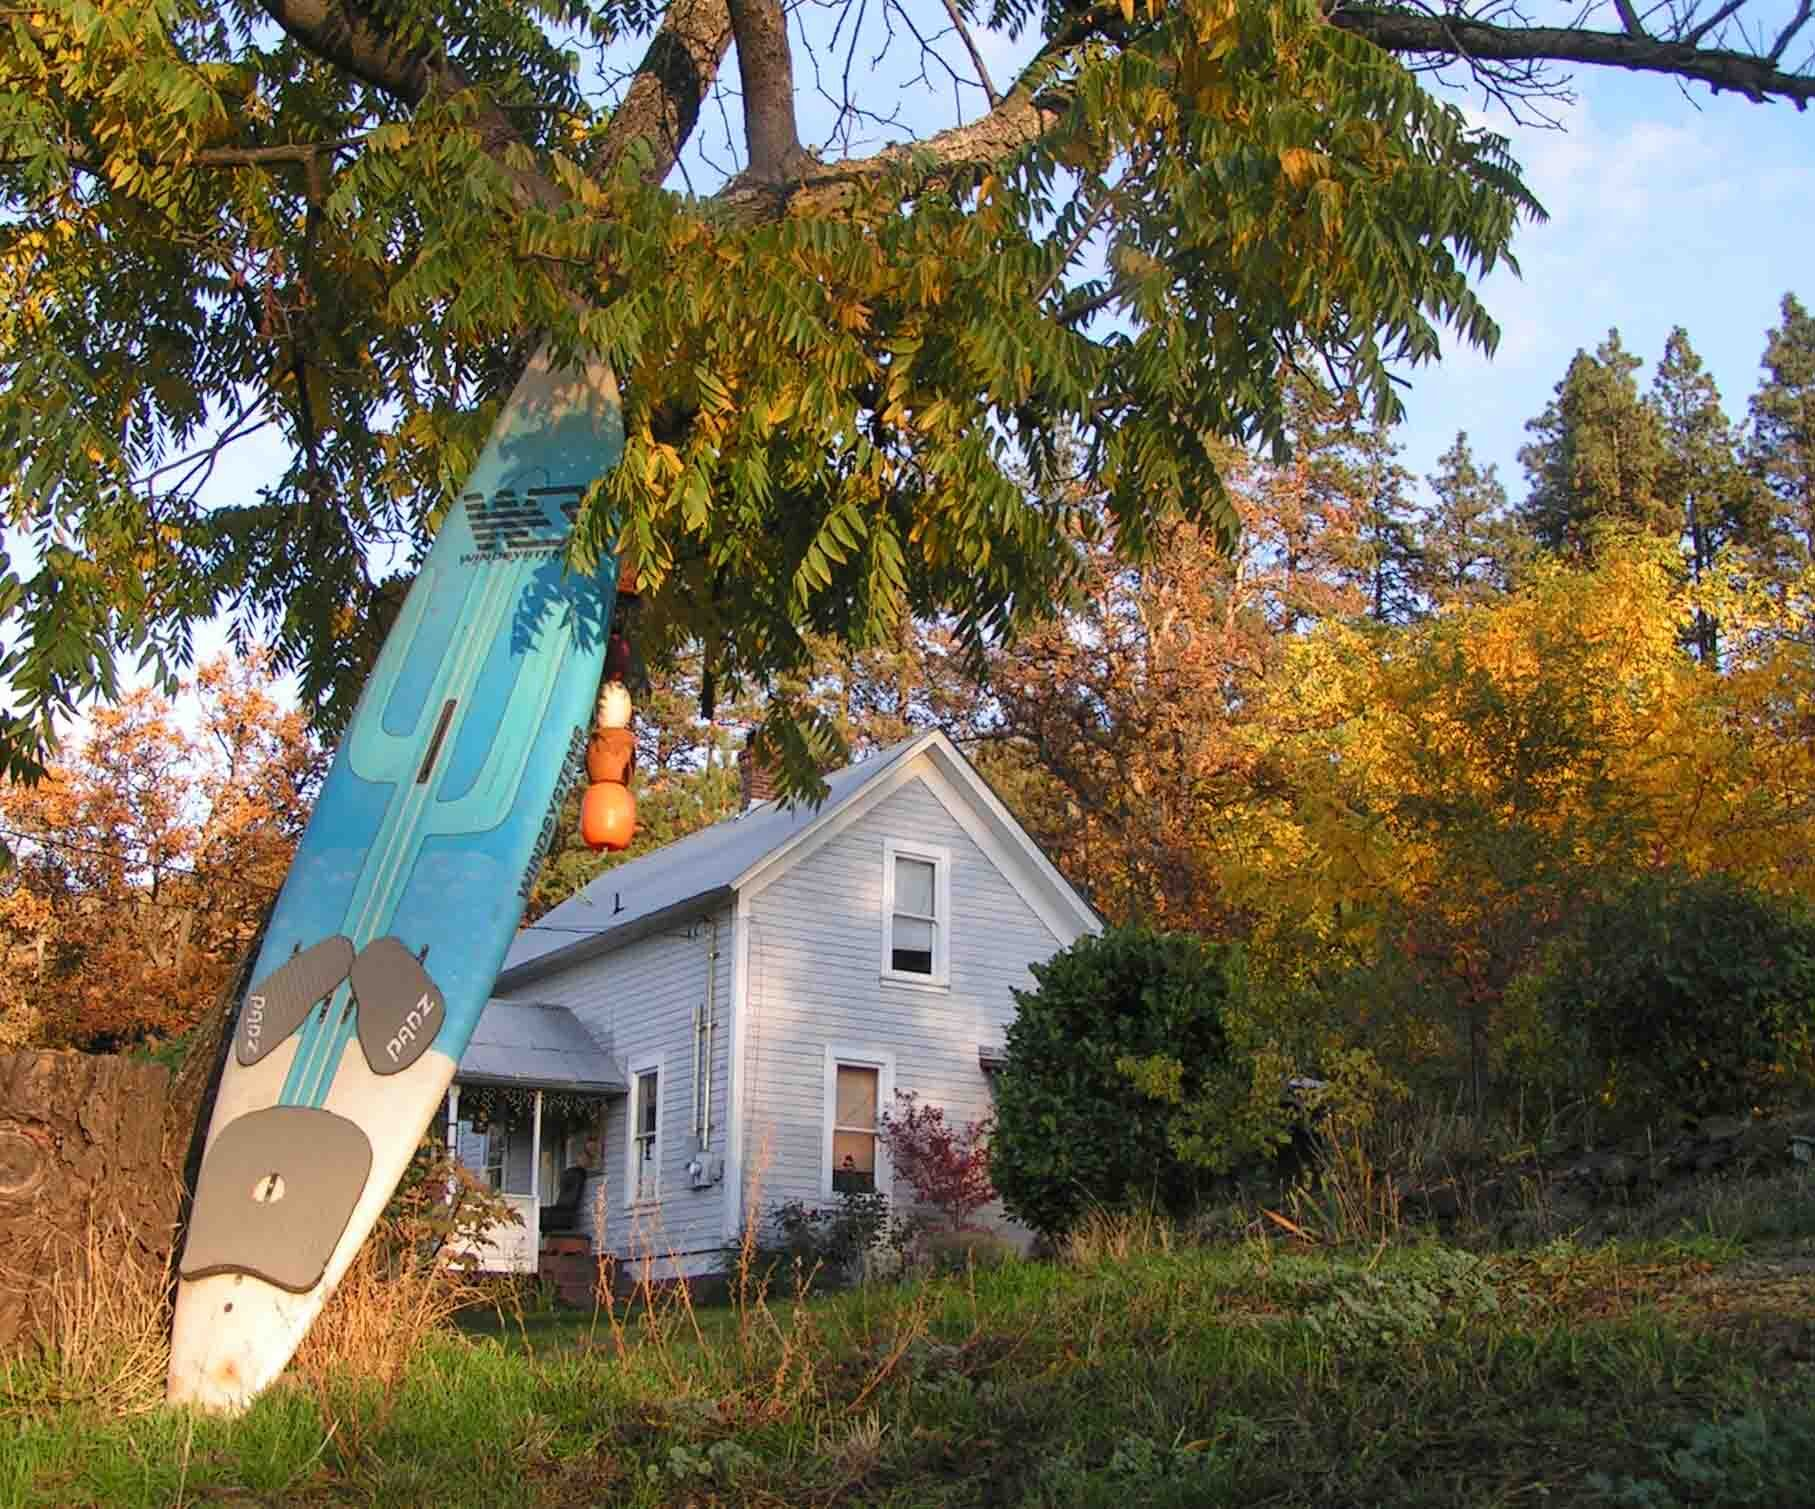 Our house. Photo: (c) Barb Ayers, DogDiary.org